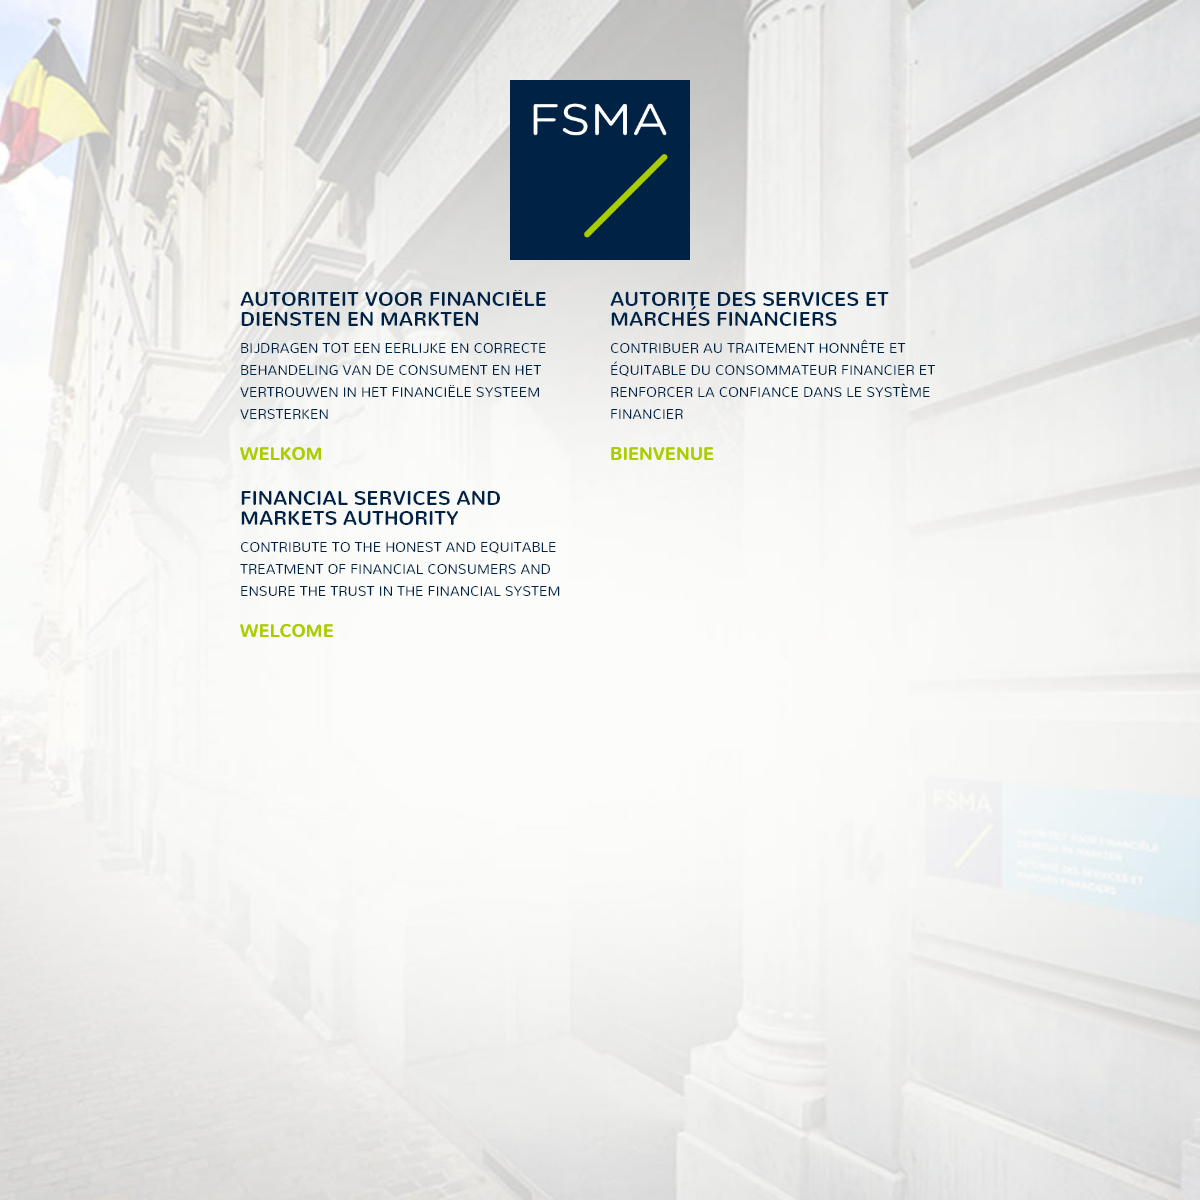 FSMA - Financial Services and Markets Authority